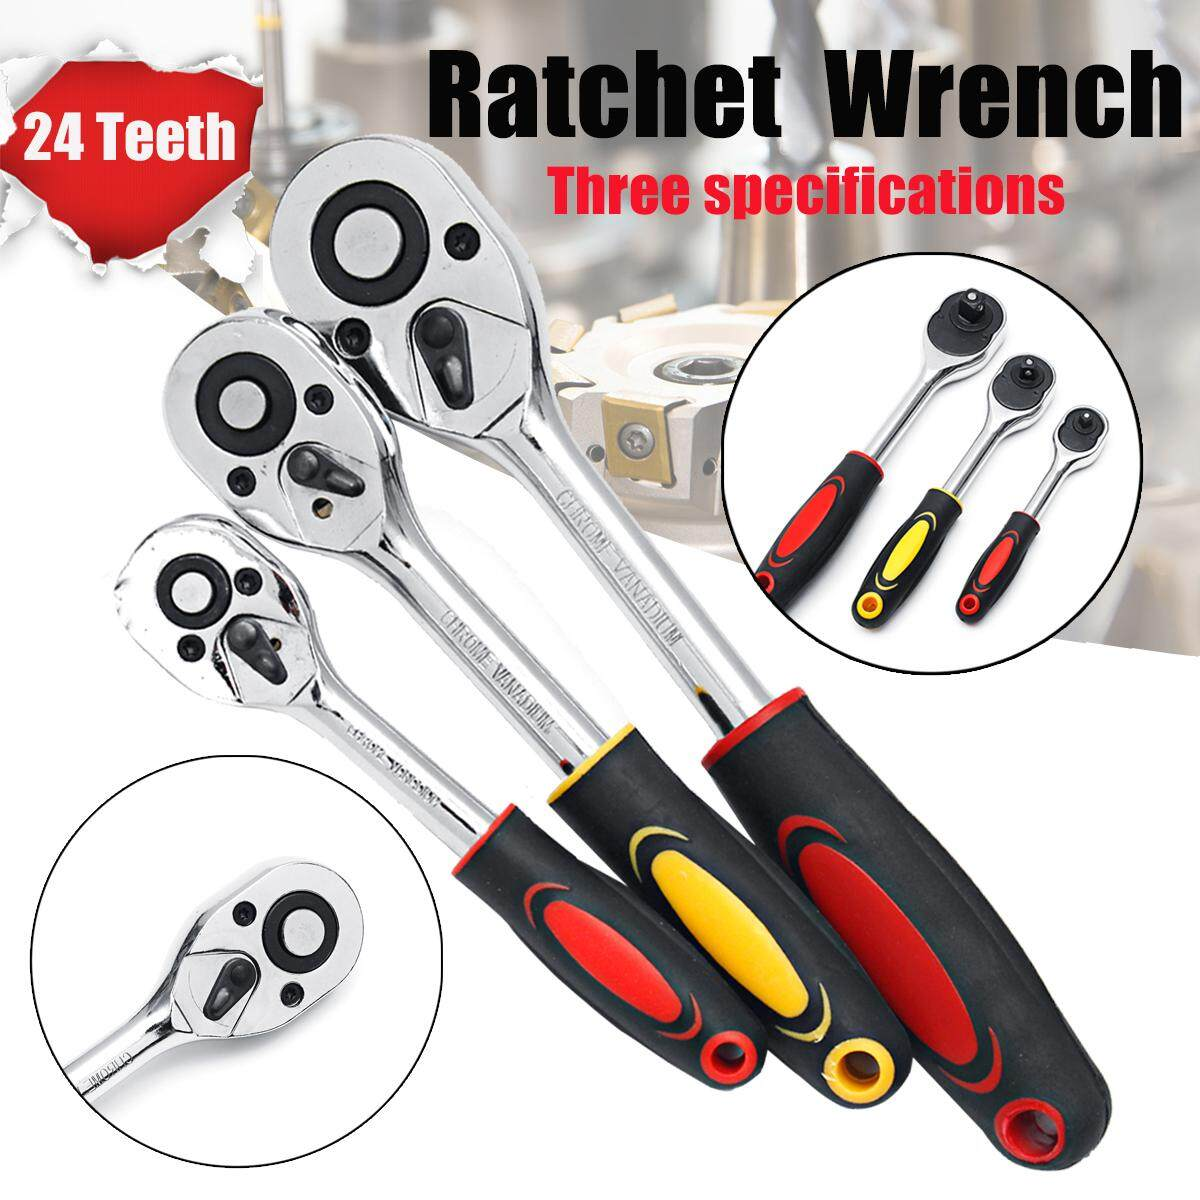 24 Teeth Electric Ratchet Wrench Straight Shank Double Way Torque Socket Tools